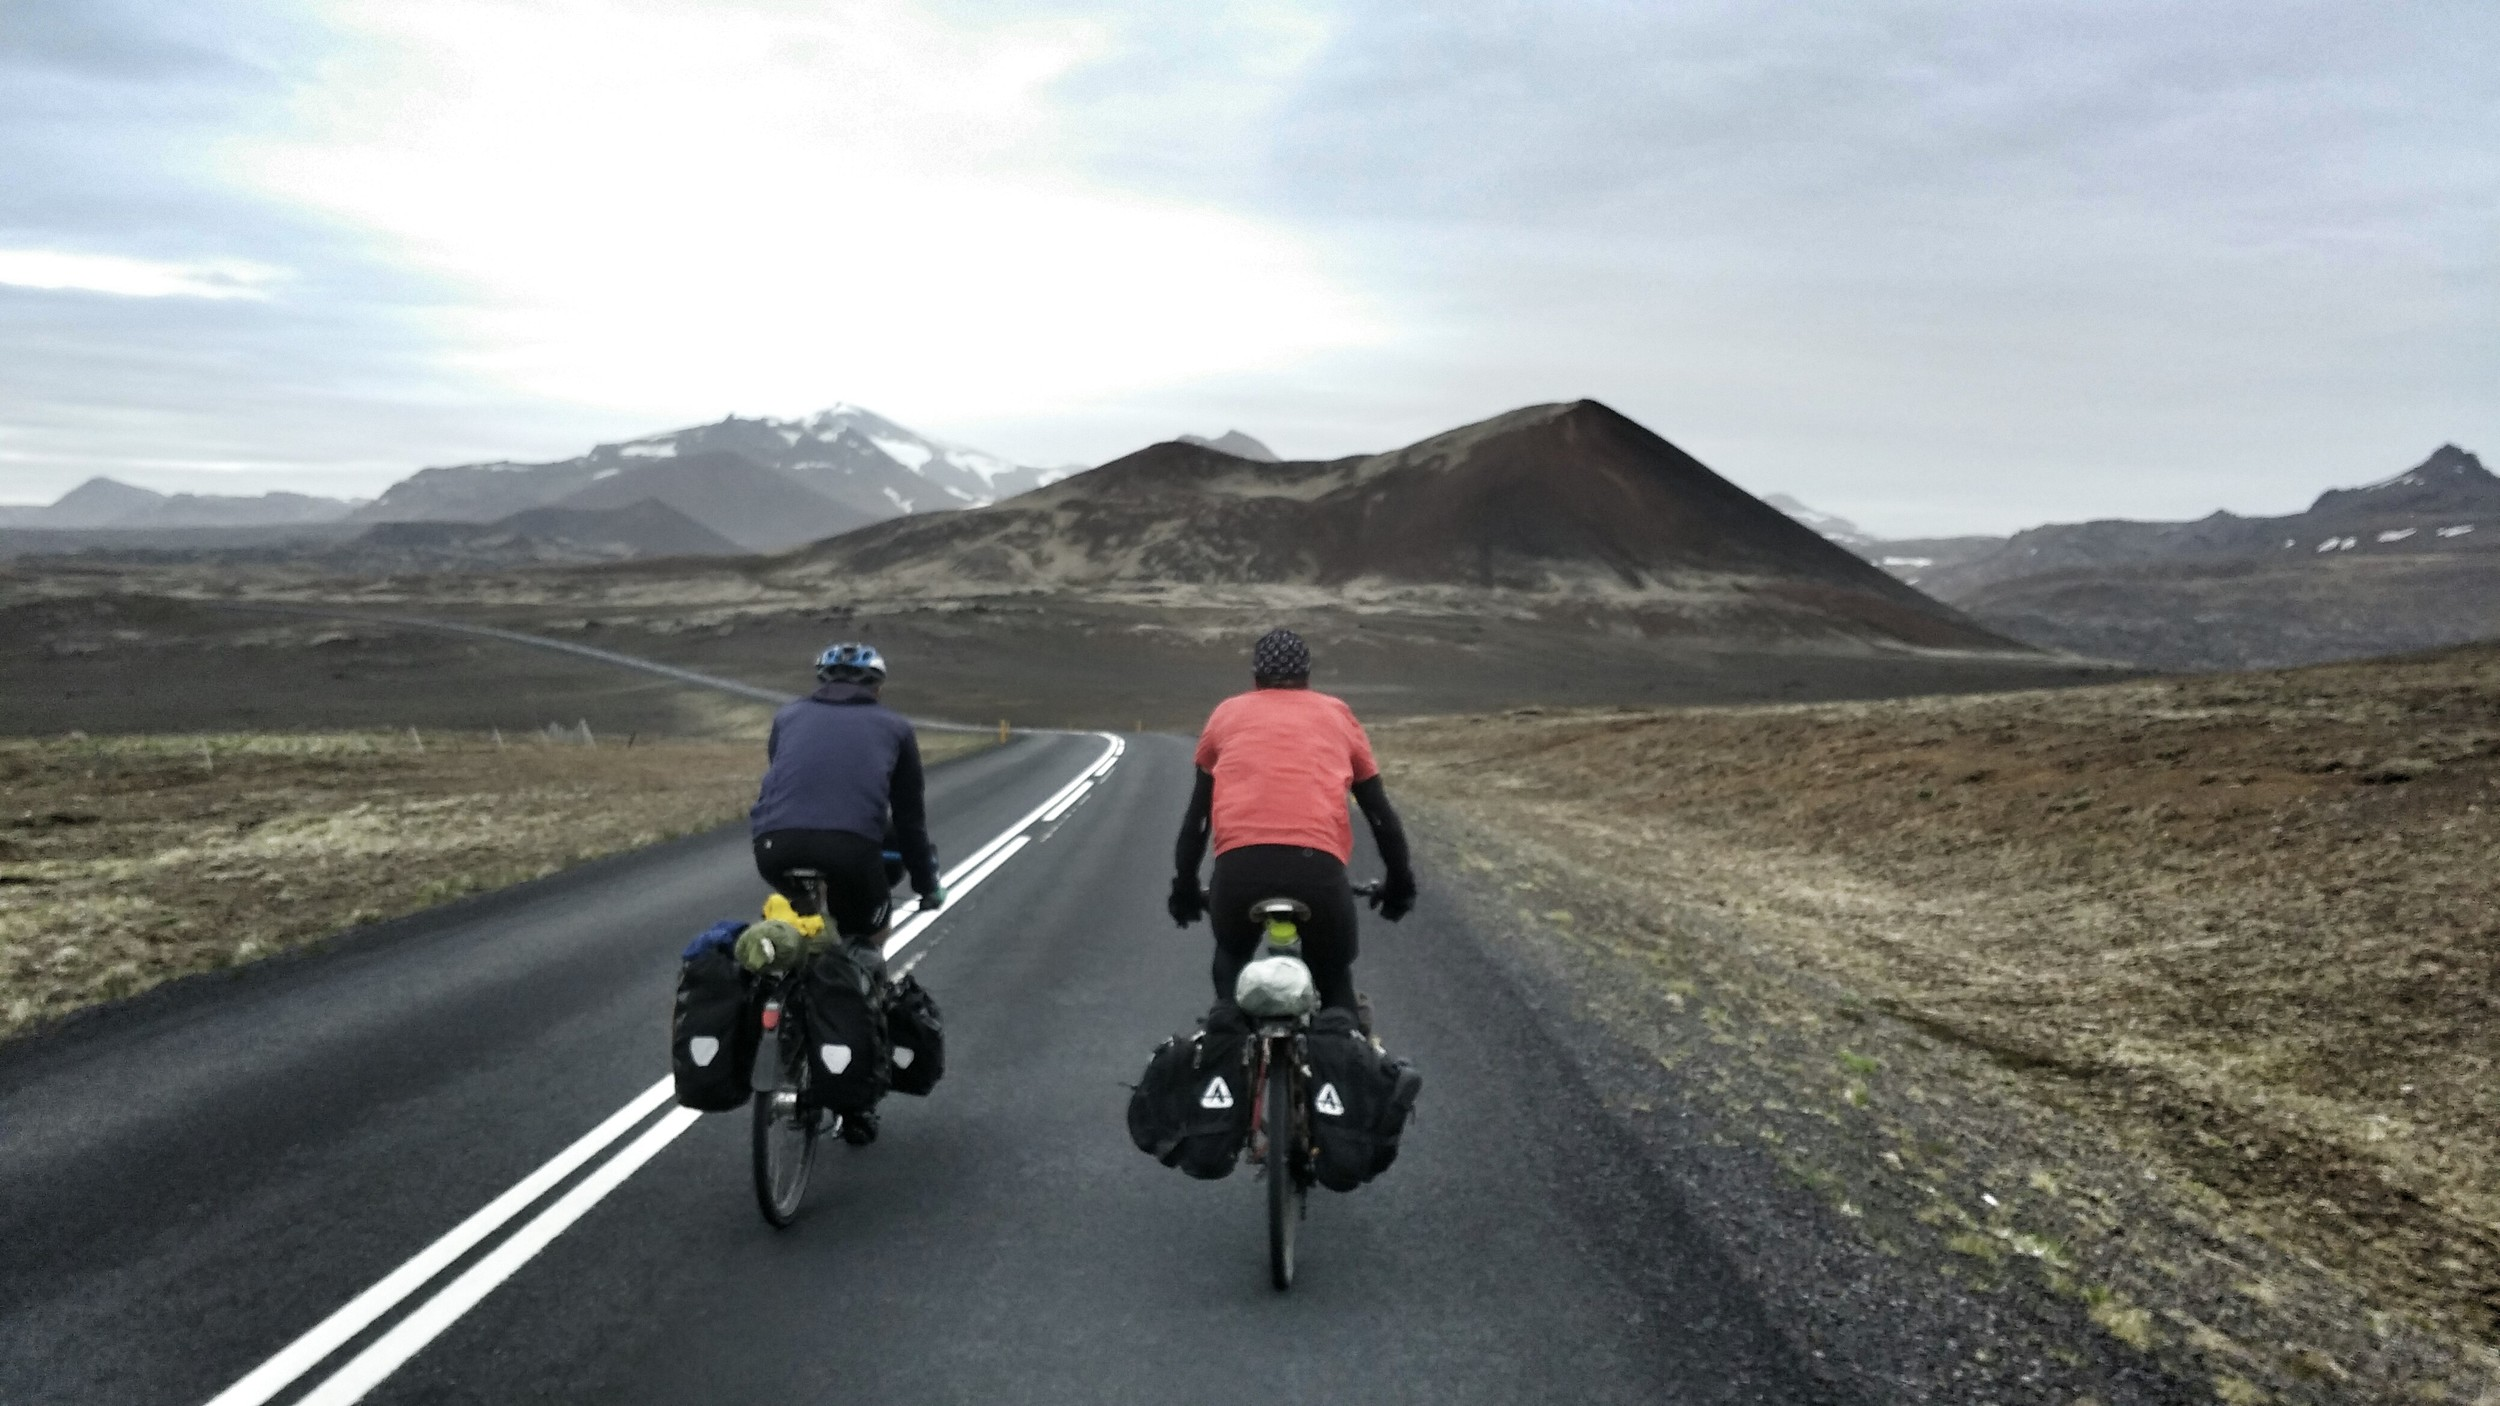 My cousin and I cycled up to Will, on the right, who came to Iceland from Scotland. We all cycled a few kilometers together, got to know each other and then cycled off. It's always a thrill running into fellow cyclists. You'd never see two cars meet like this, cycling keeps things personal. We later ran into Will in Reykjavik a week and a half later and shared stories.